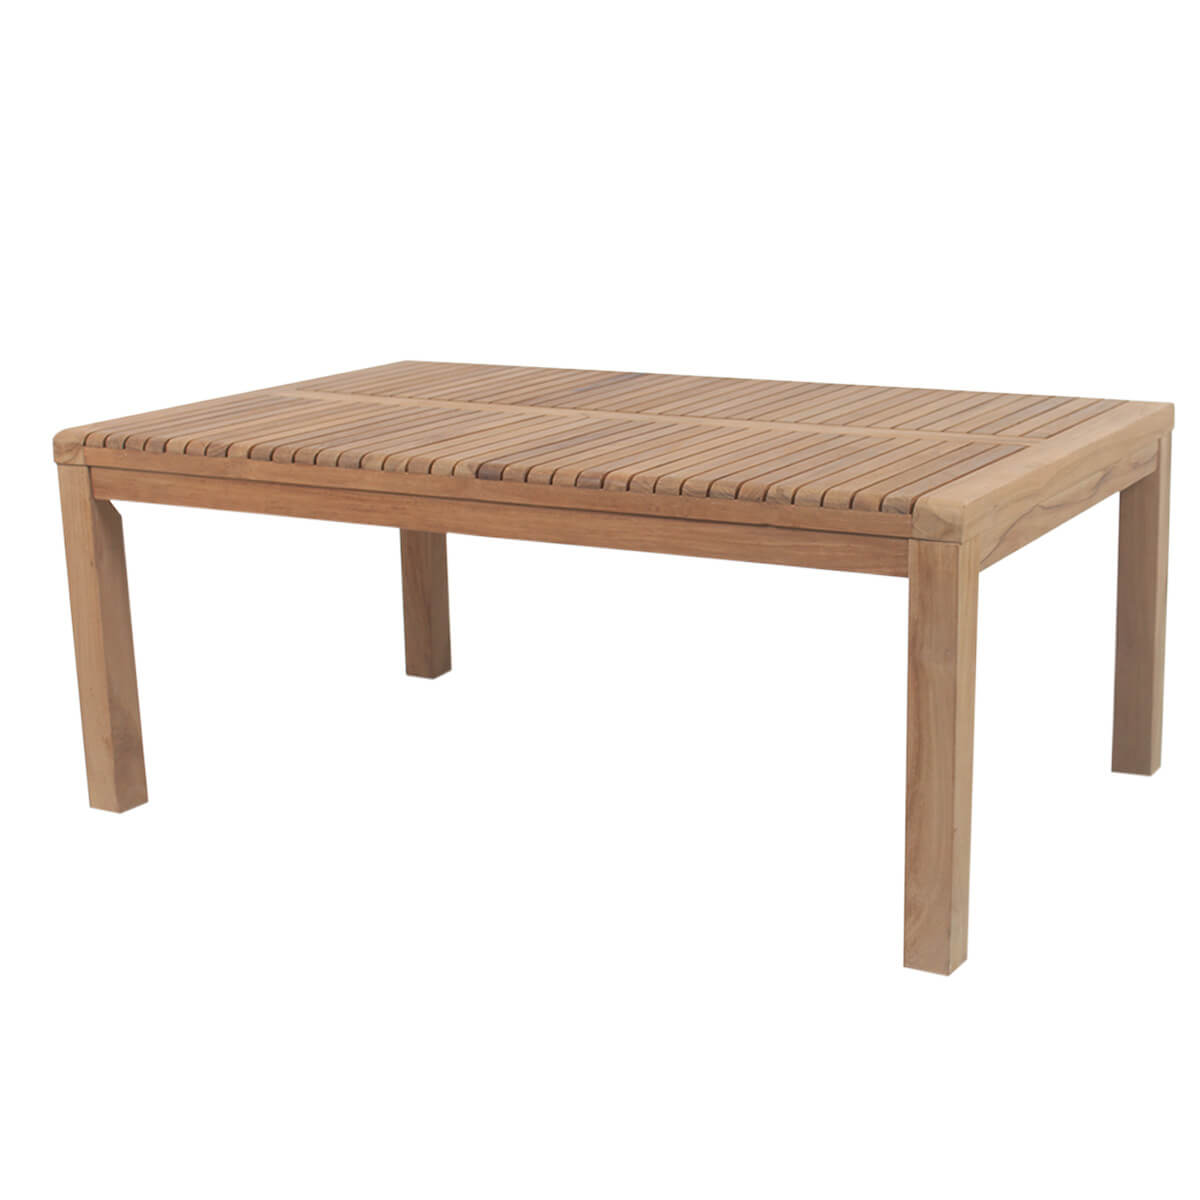 Vienna Stylish Handcrafted Sand Finished Teak Wood Coffee Table